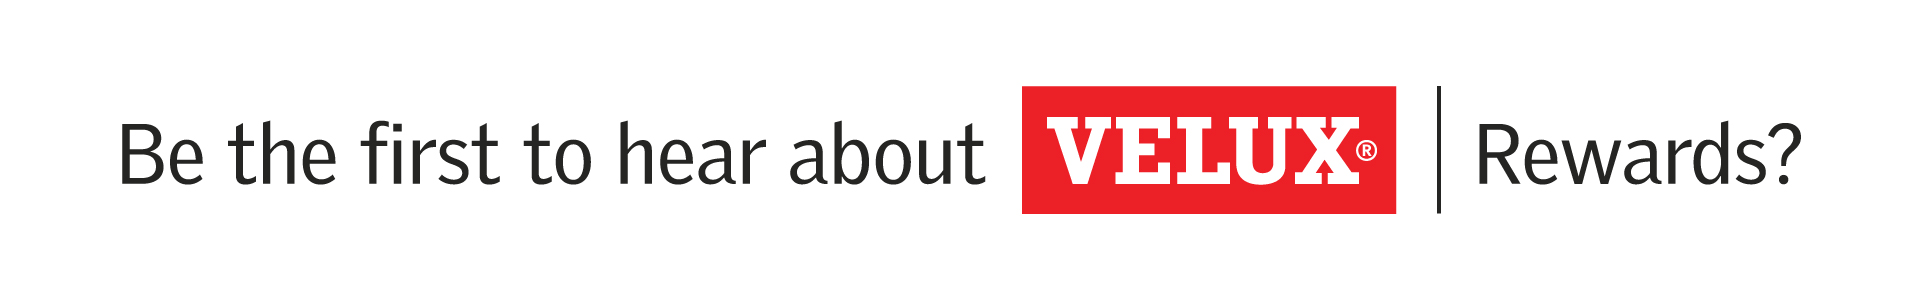 Be the first to hear about VELUX Rewards by visiting JJ Roofing Supplies social channels